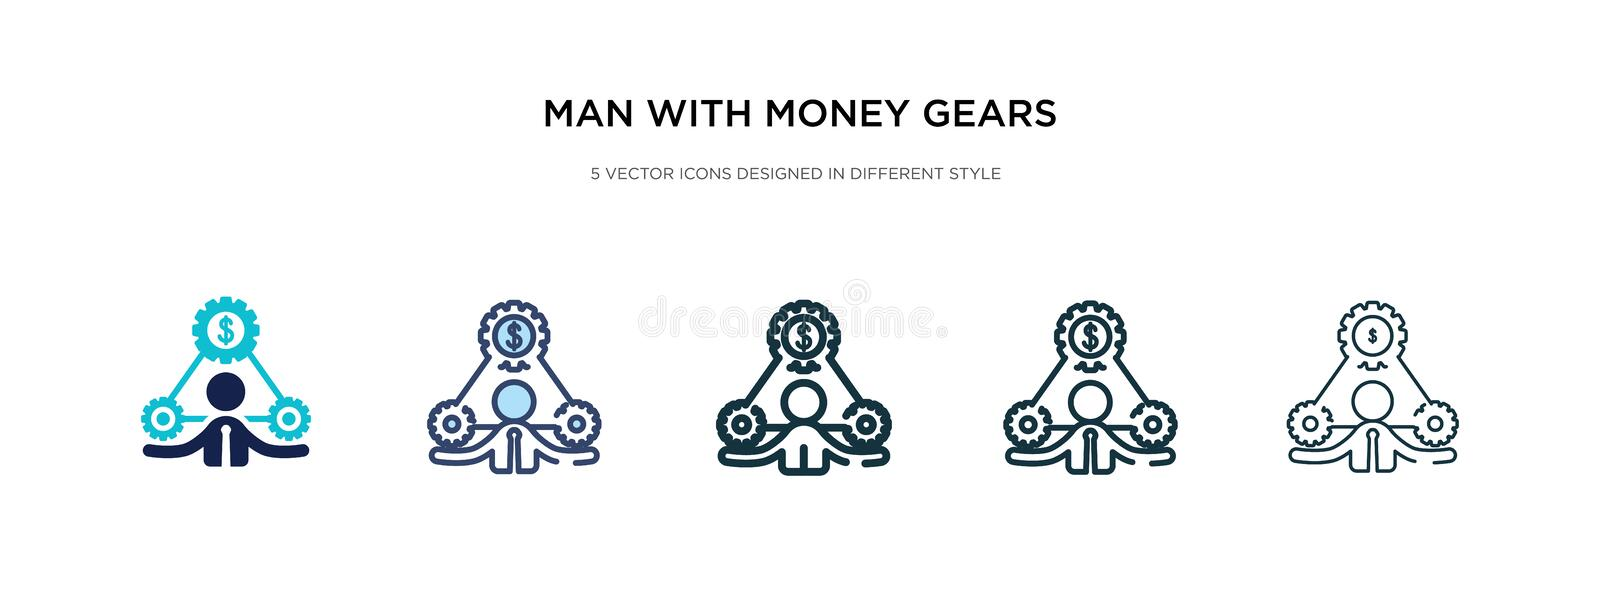 Man with money gears icon in different style vector illustration. two colored and black man with money gears vector icons designed stock illustration